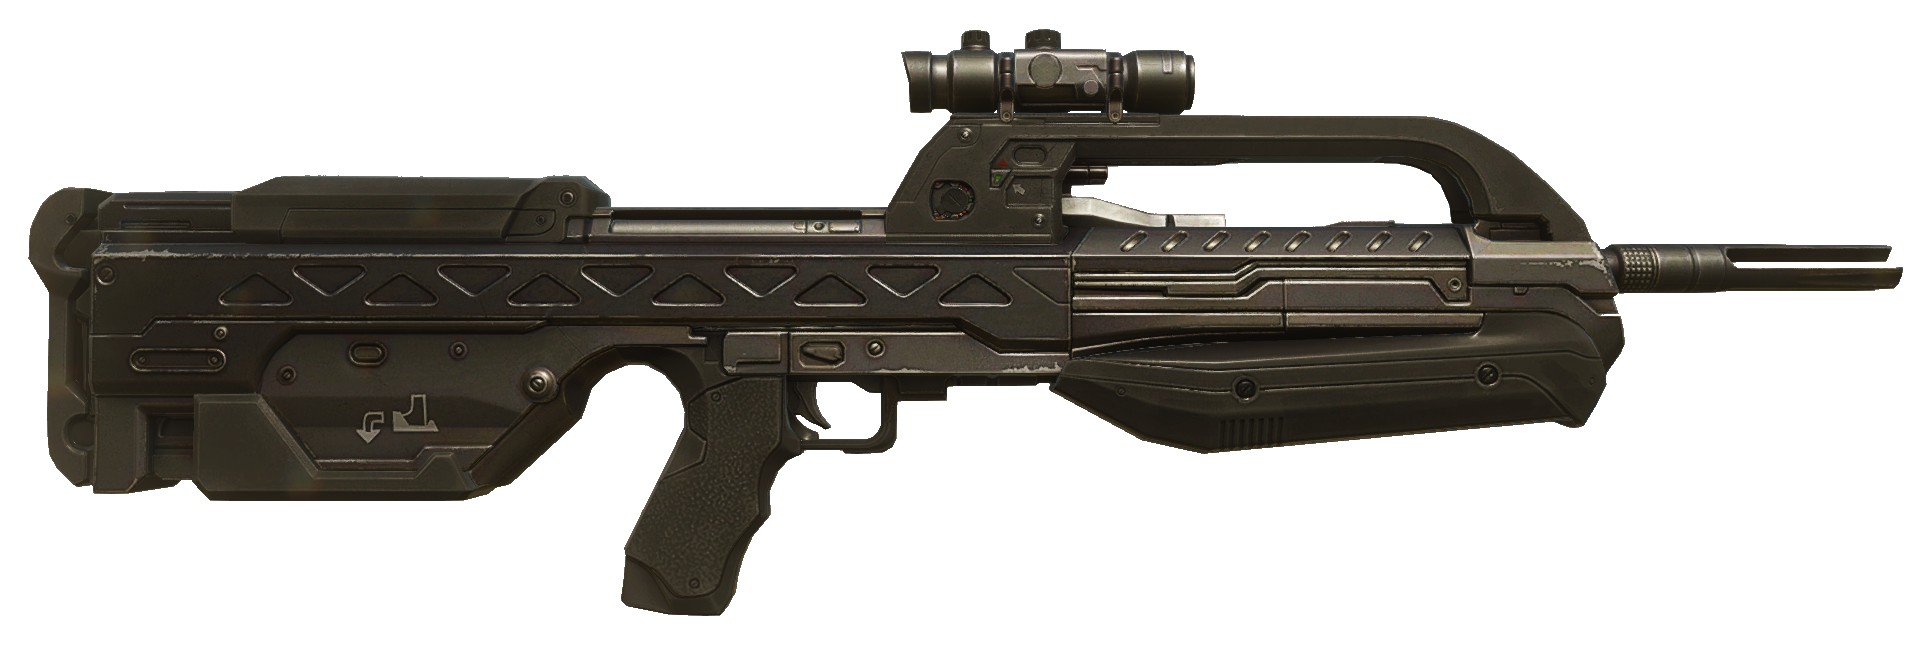 Halo battle rifle png. Br service nation fandom